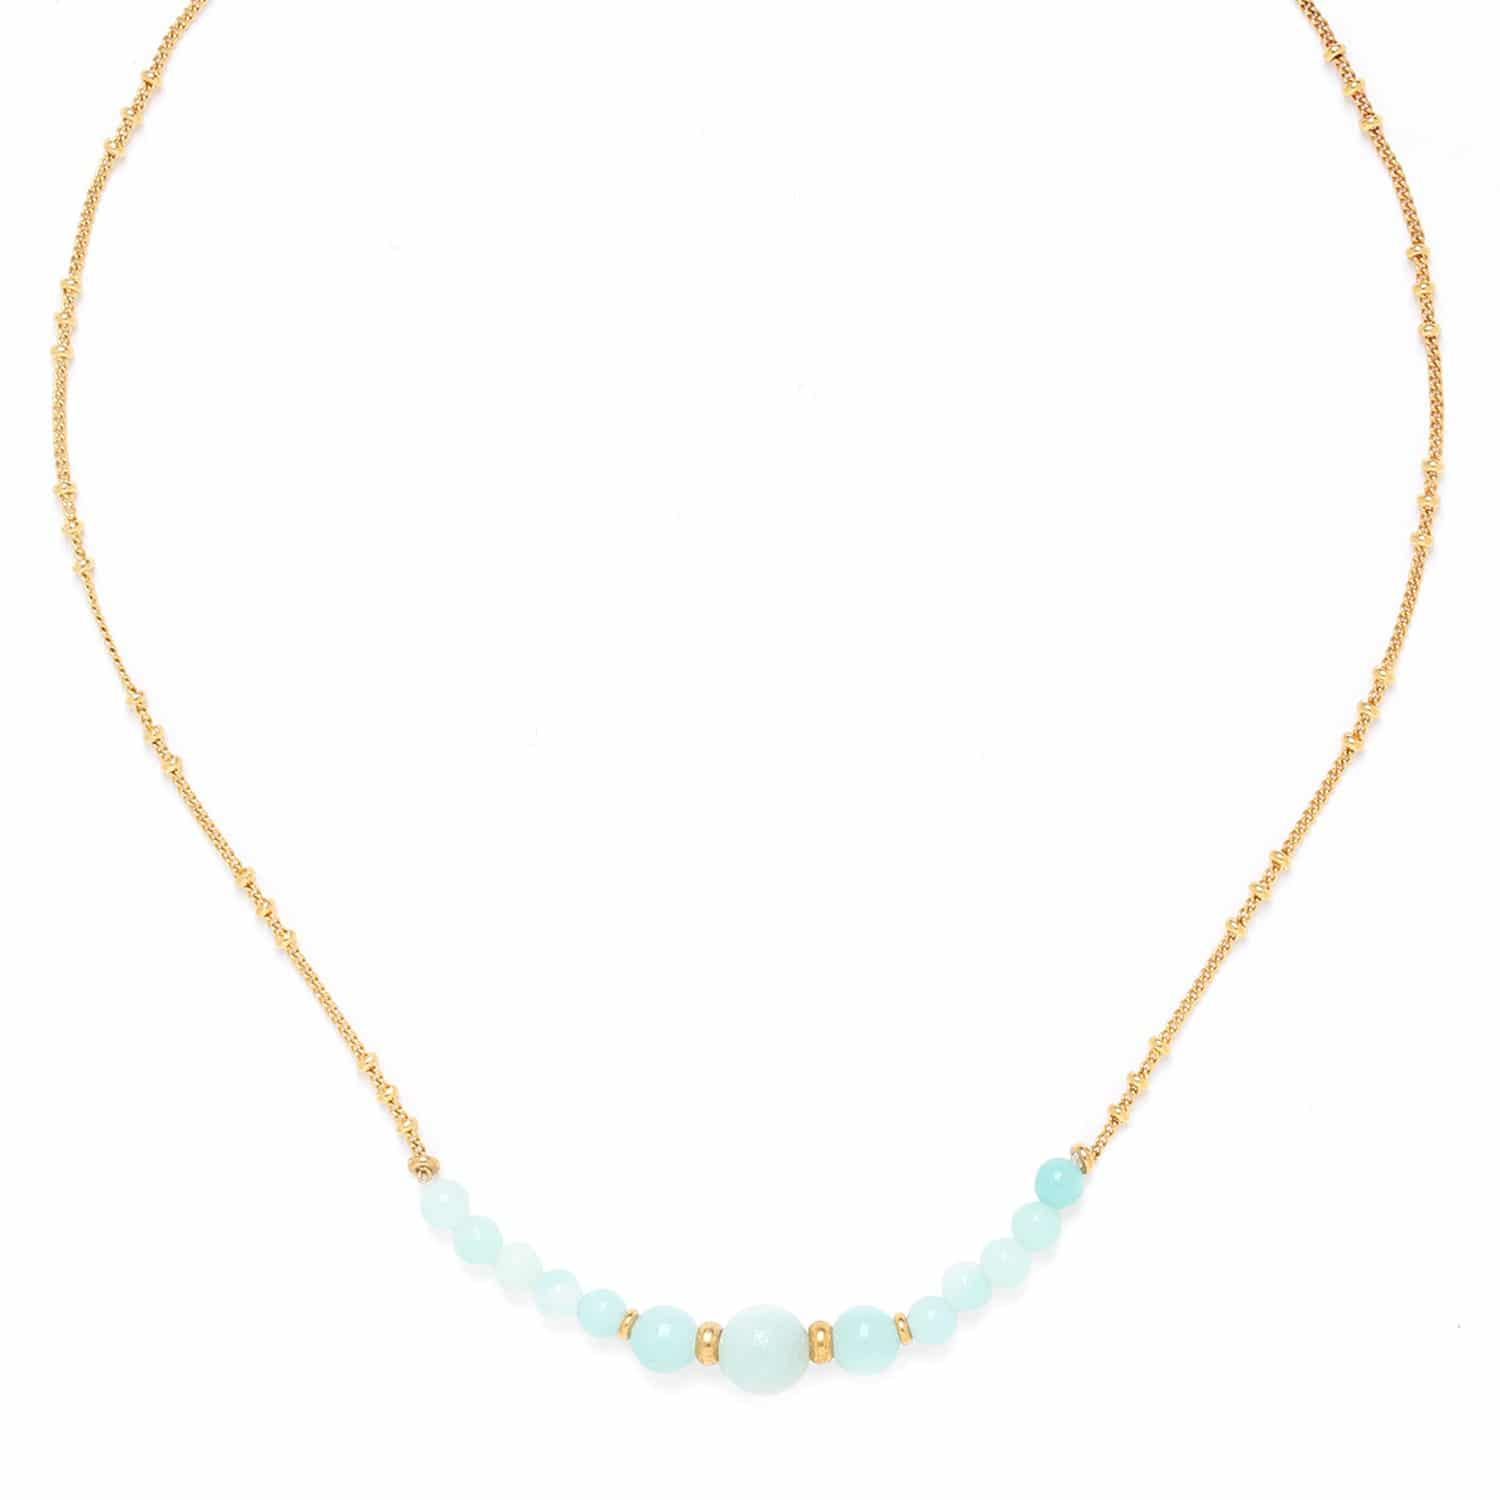 CELADON  amazonite necklace with gold chain